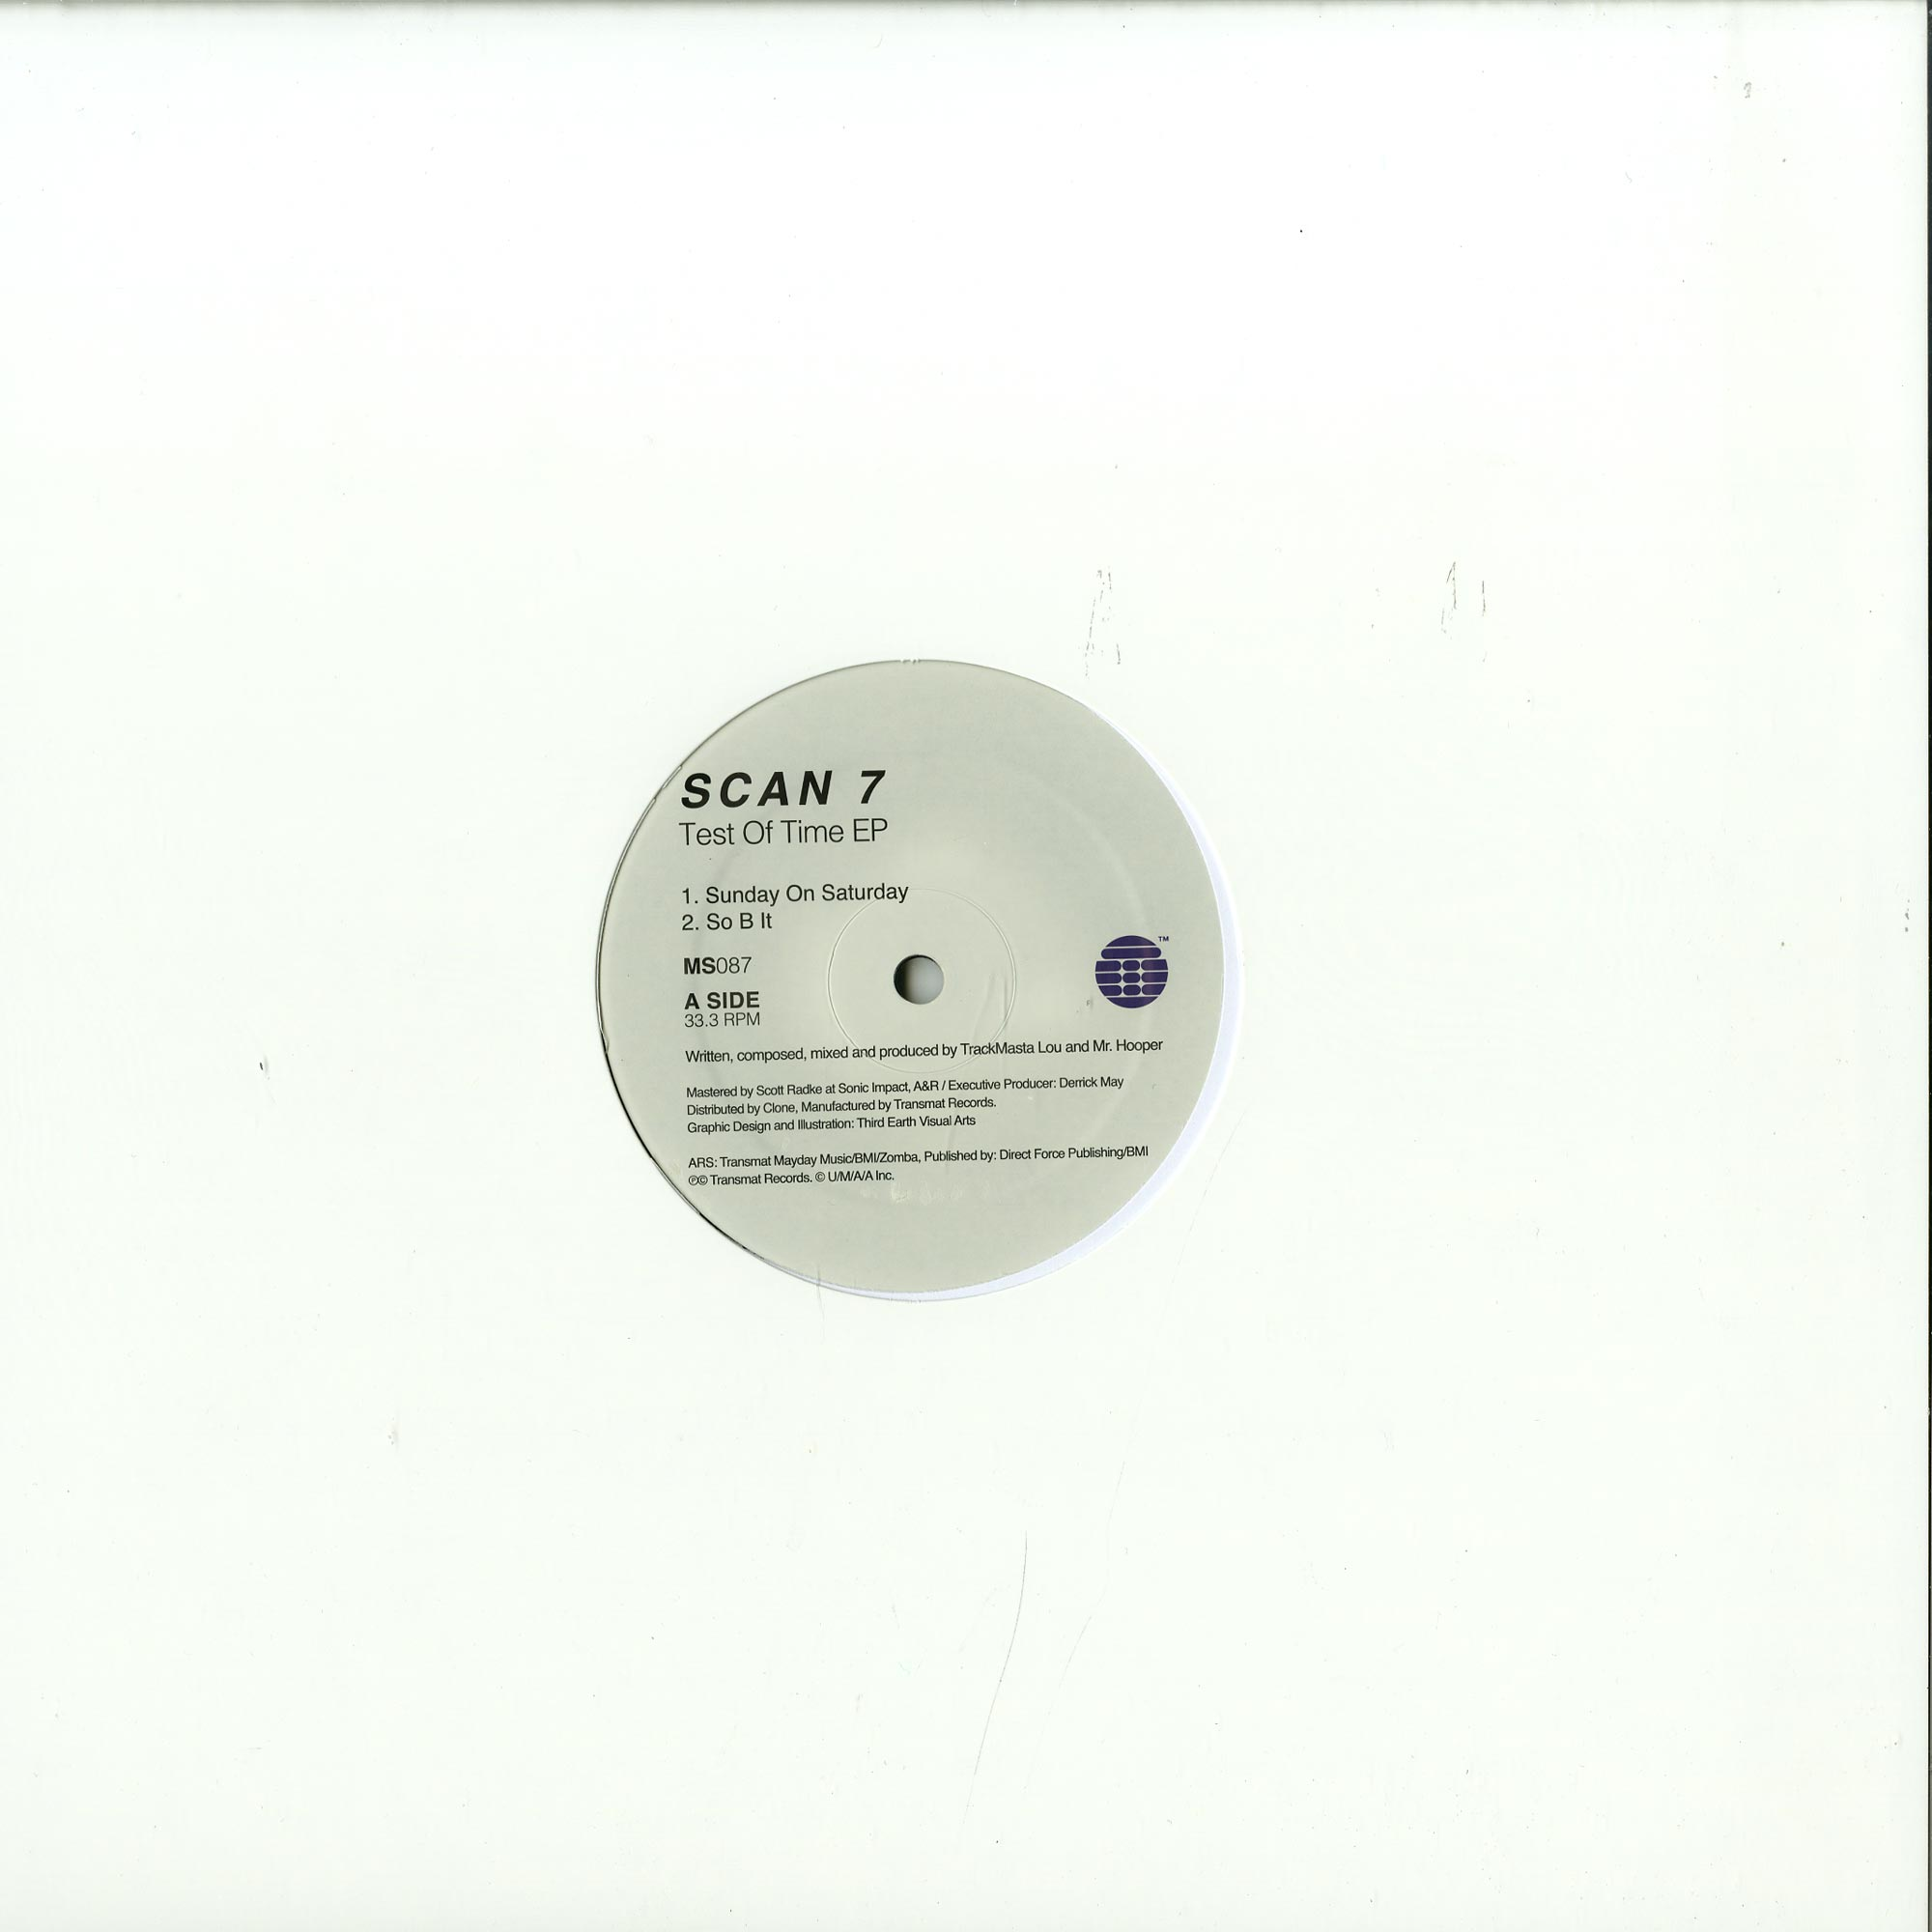 Scan 7 - TEST OF TIME EP